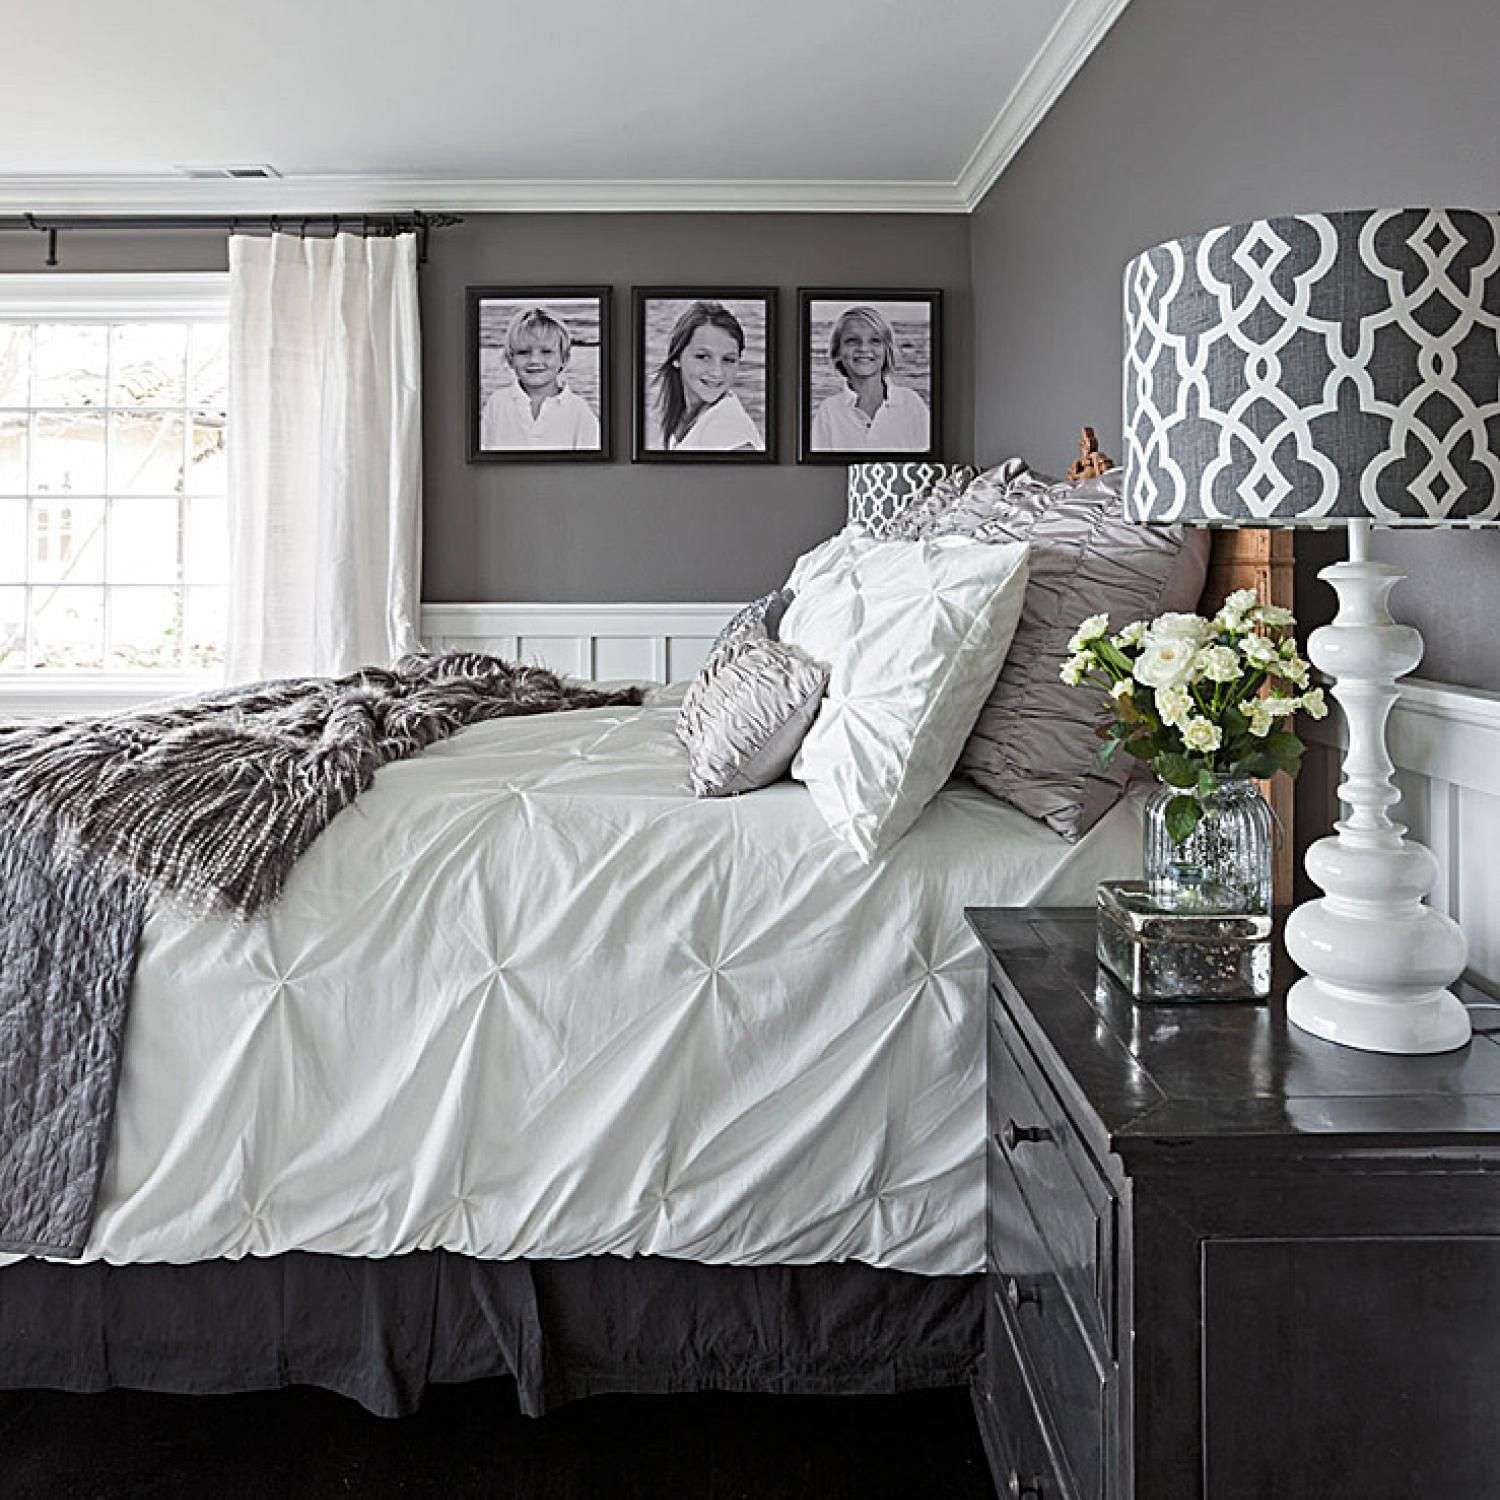 Bedroom Design Ideas Grey gorgeous gray-and-white bedrooms | bedrooms | pinterest | bedrooms